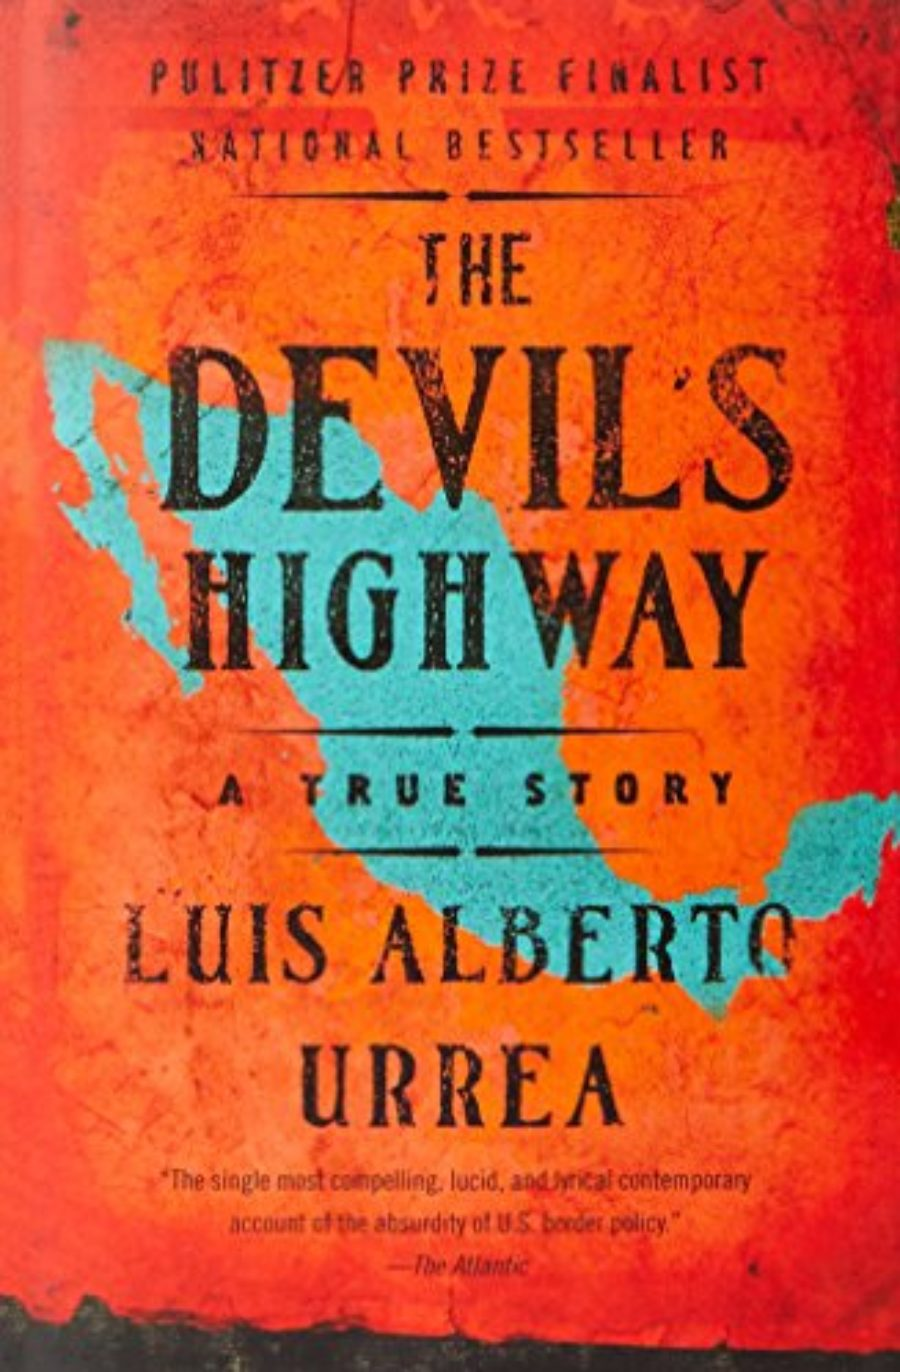 Luis Alberto Urrea — What Borders Are Really About, and What